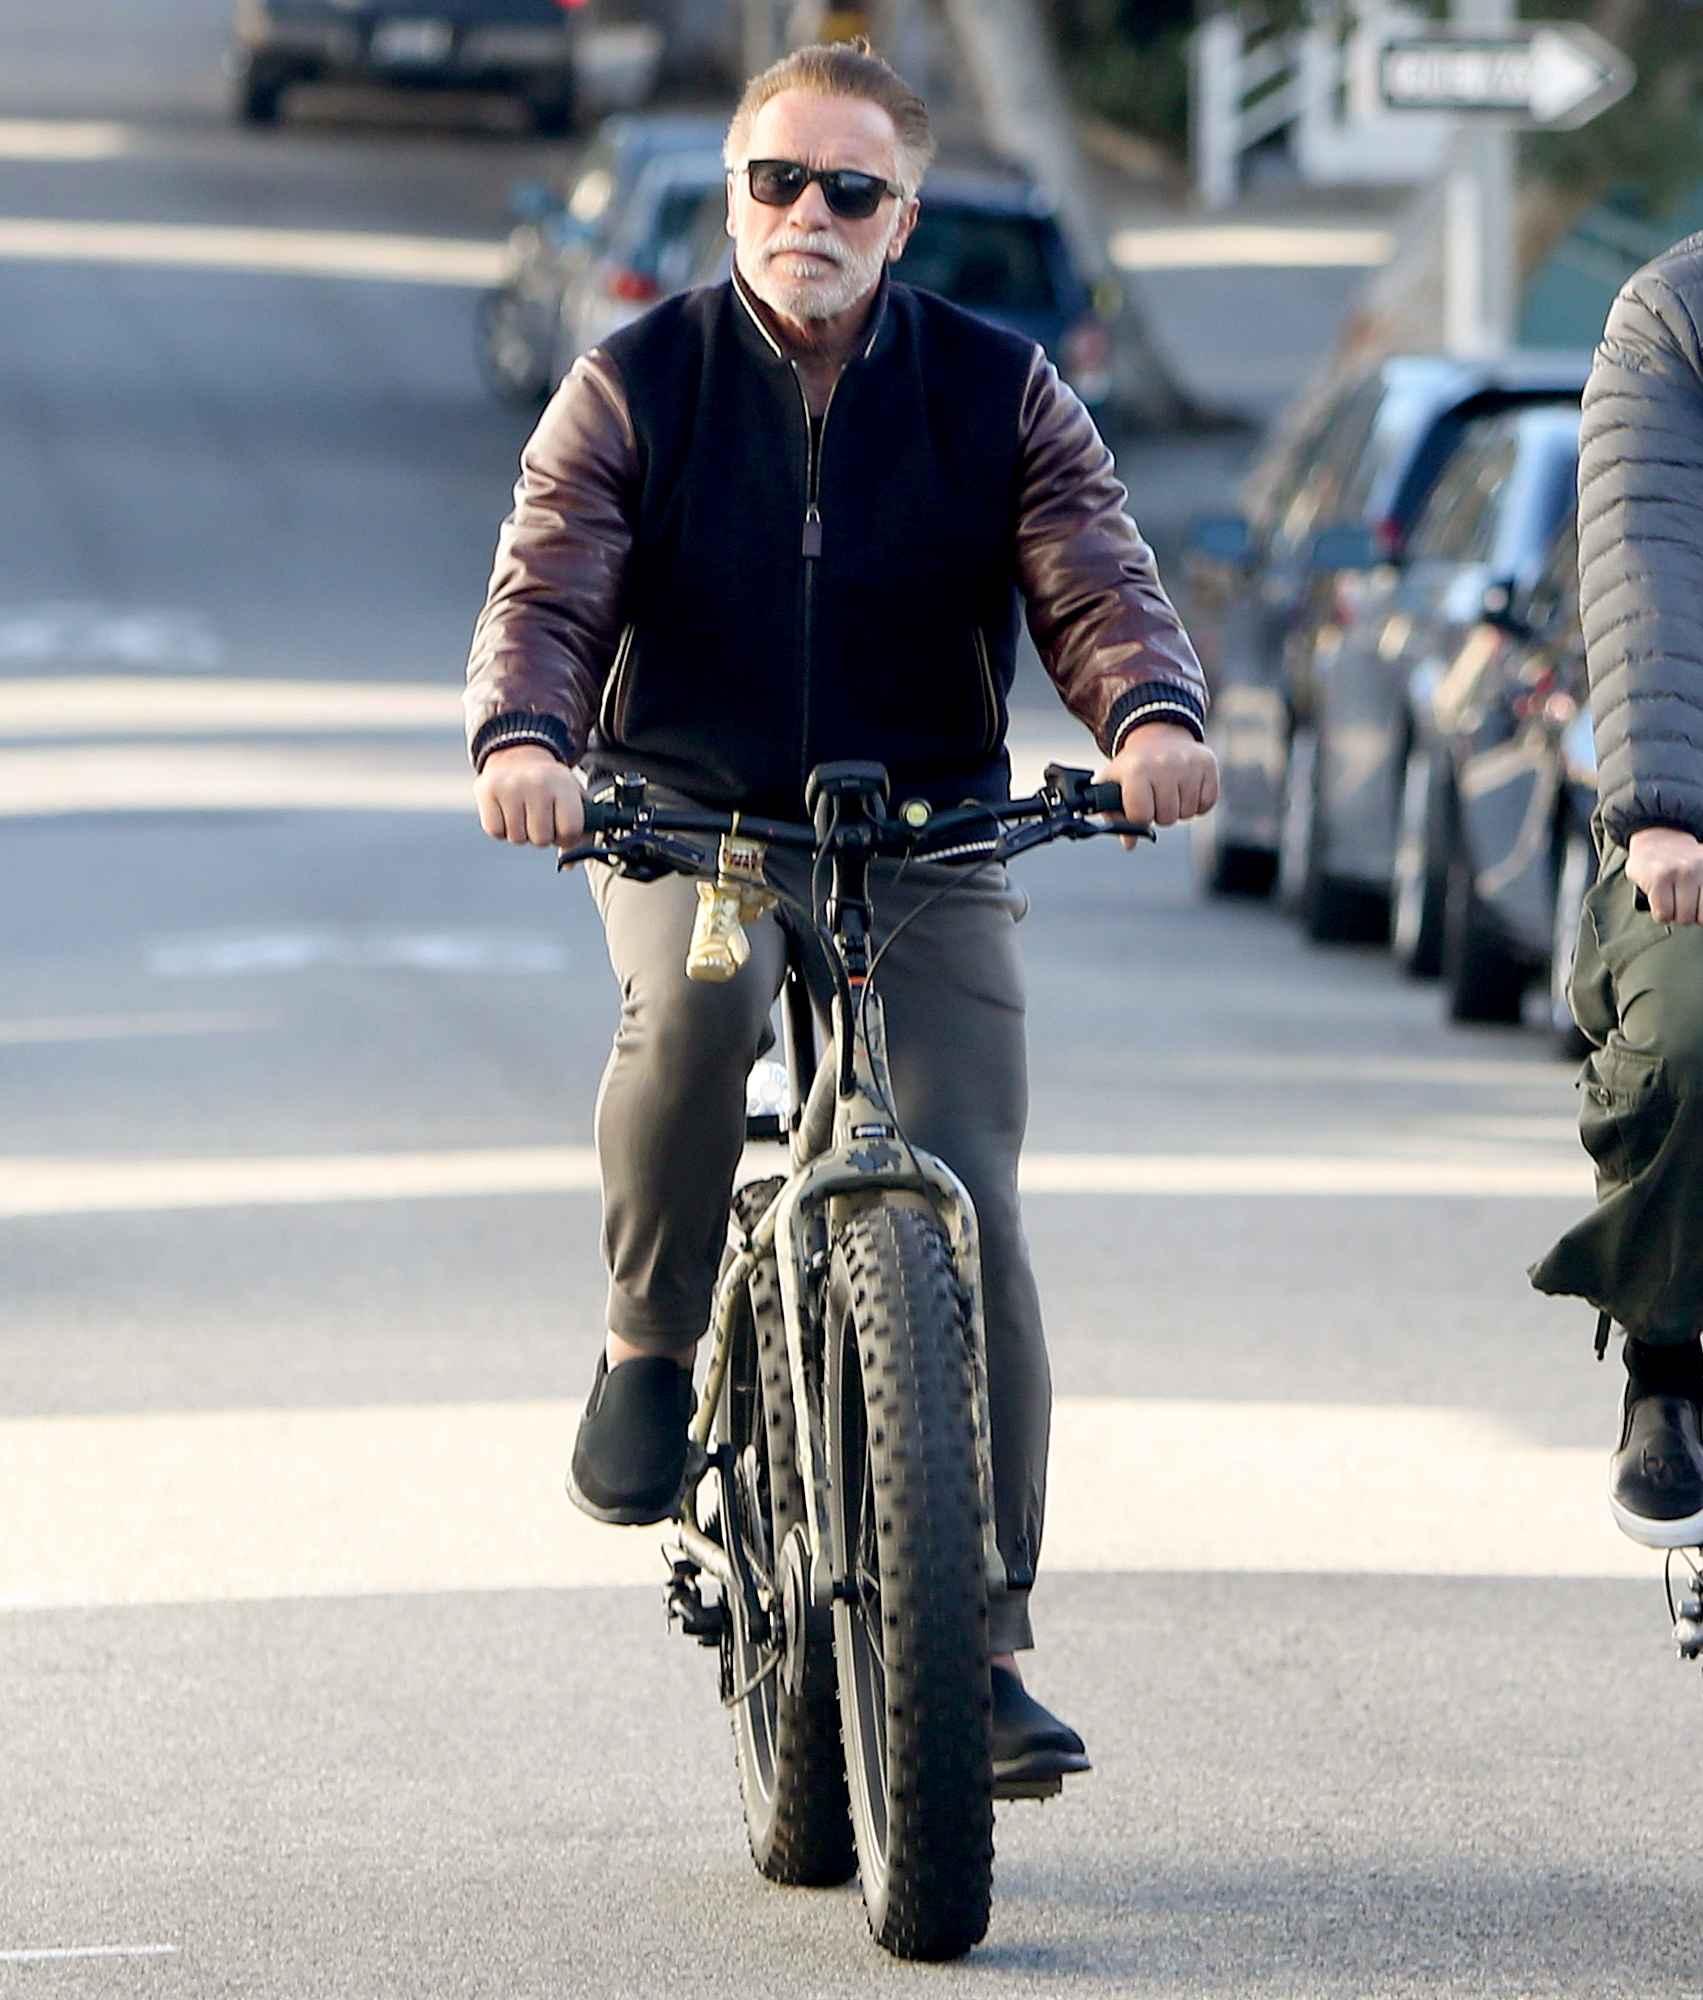 Arnold-Schwarzenegger-biking - The former bodybuilder turned actor turned governor went for a spin on a two-wheel in L.A. on January 24, 2019.